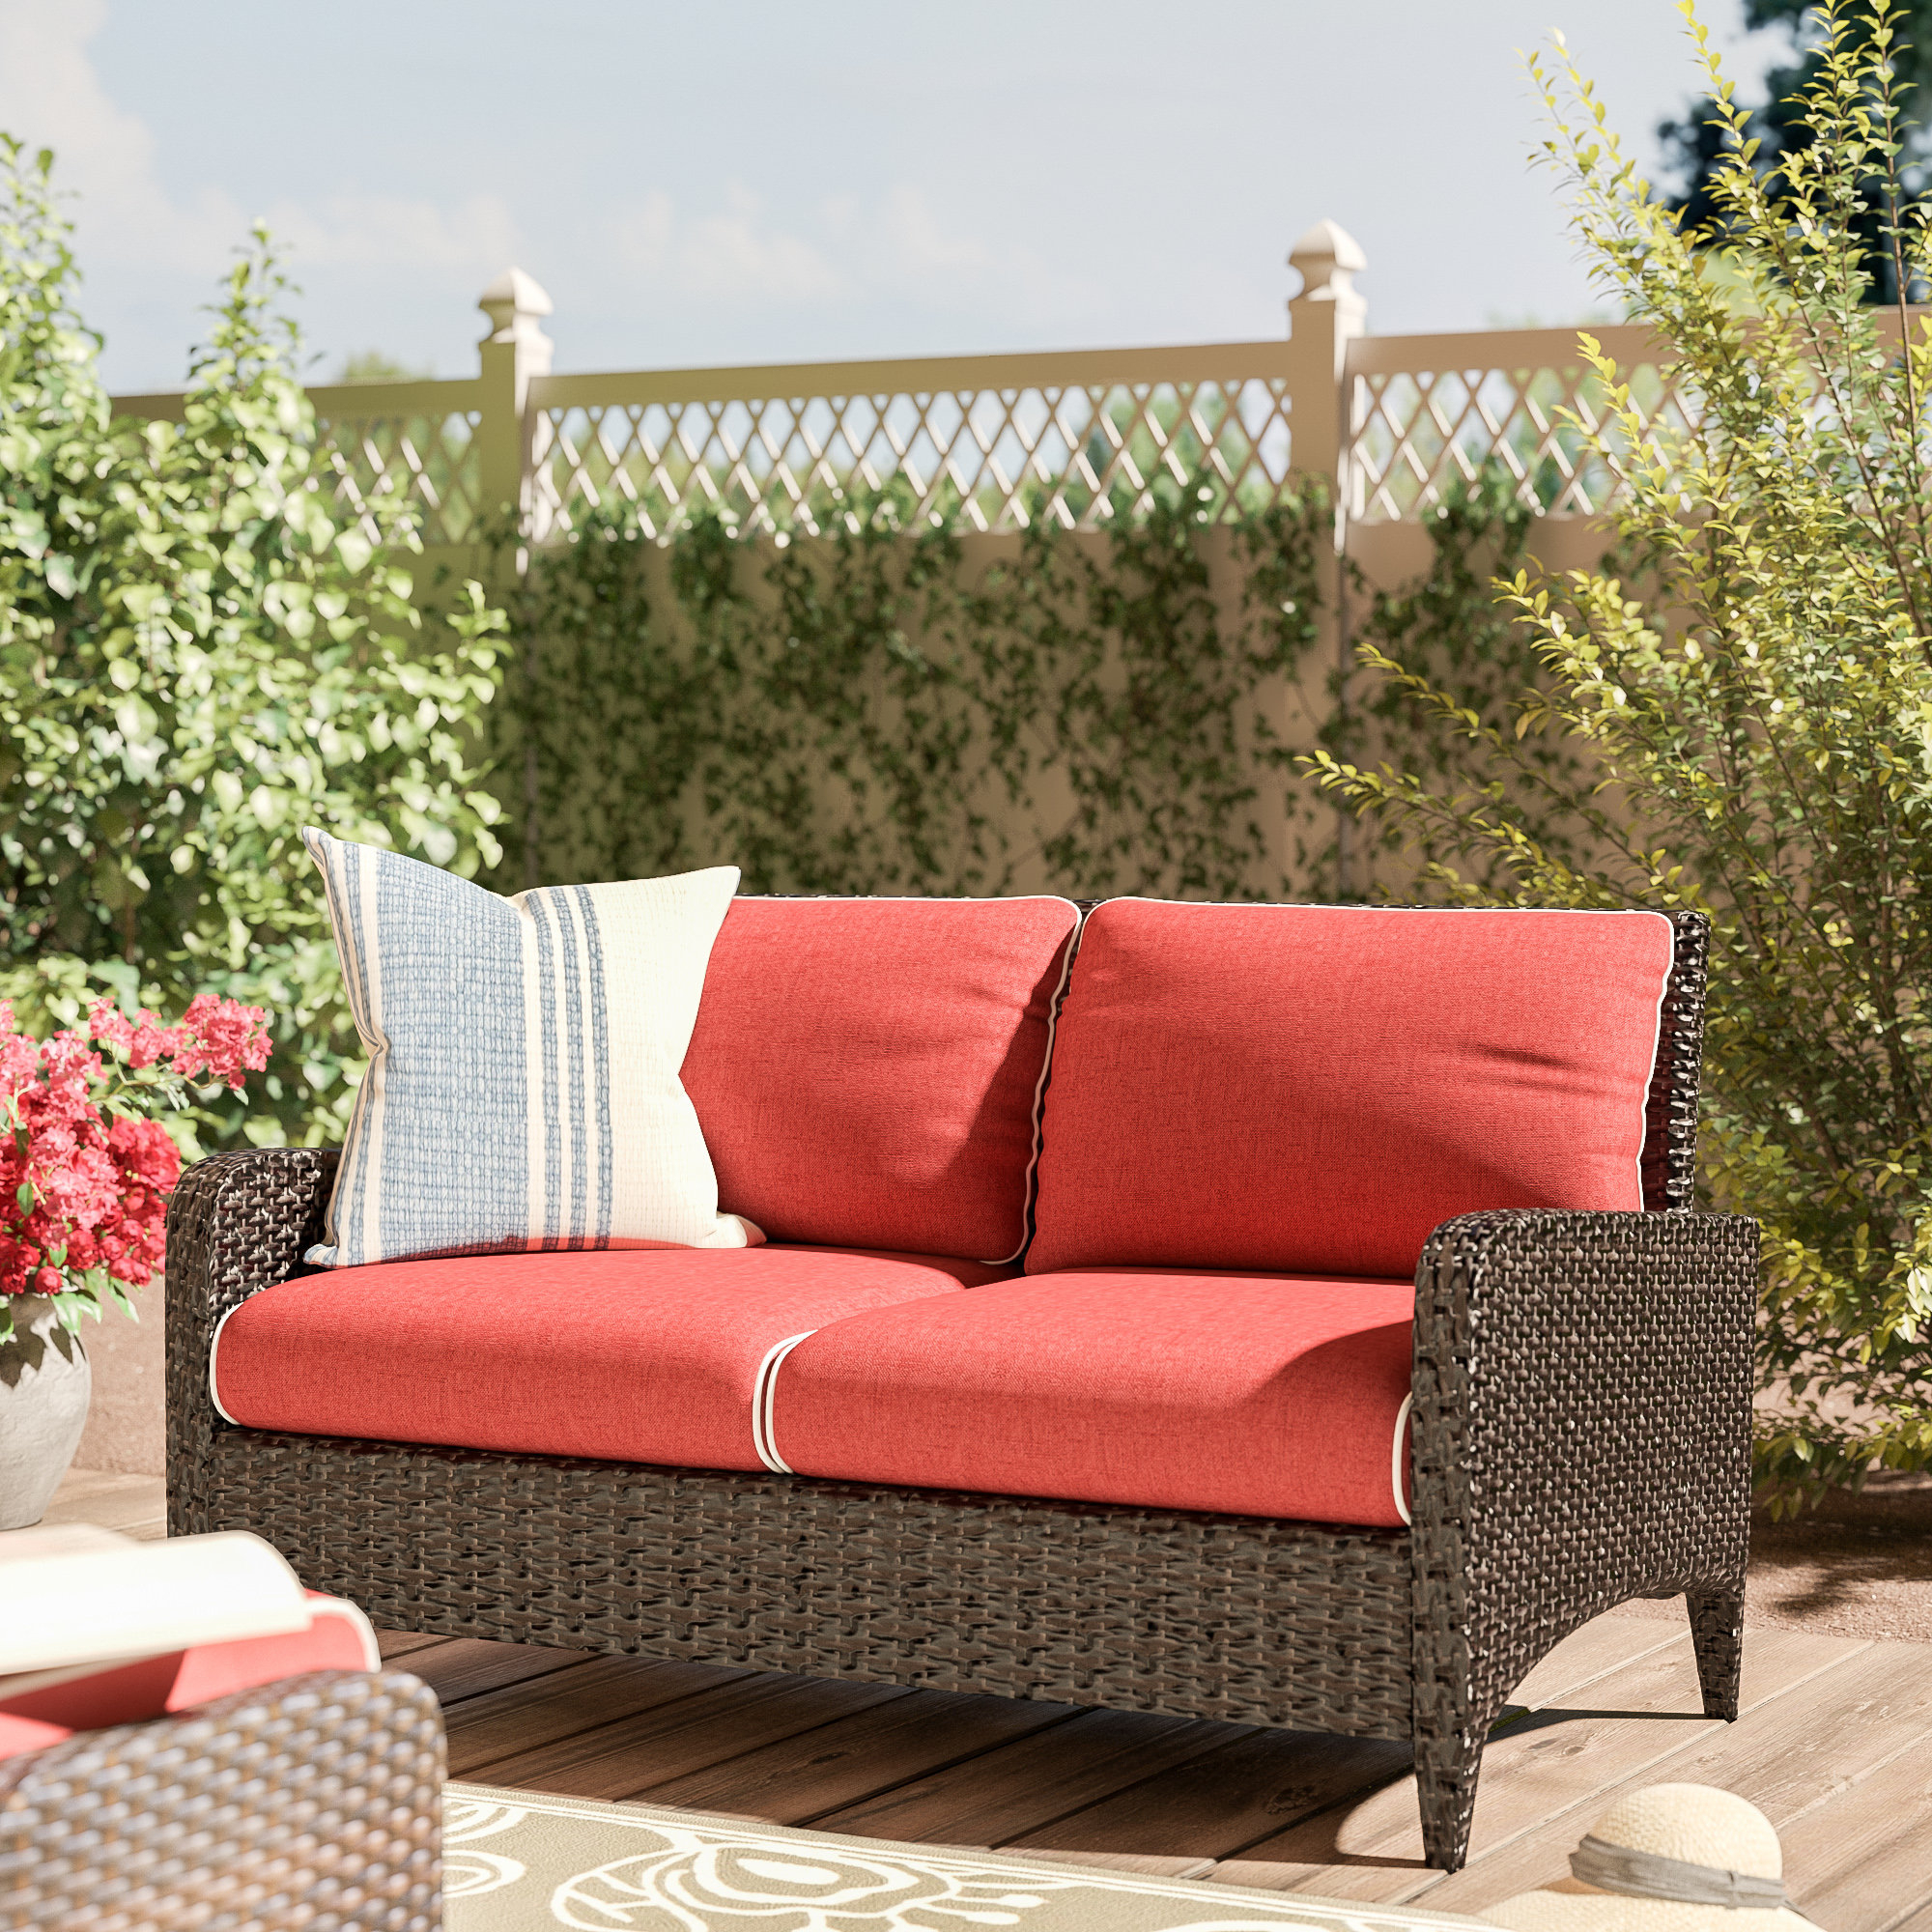 Popular Mosca Patio Loveseat With Cushions In Freitag Loveseats With Cushions (View 16 of 20)